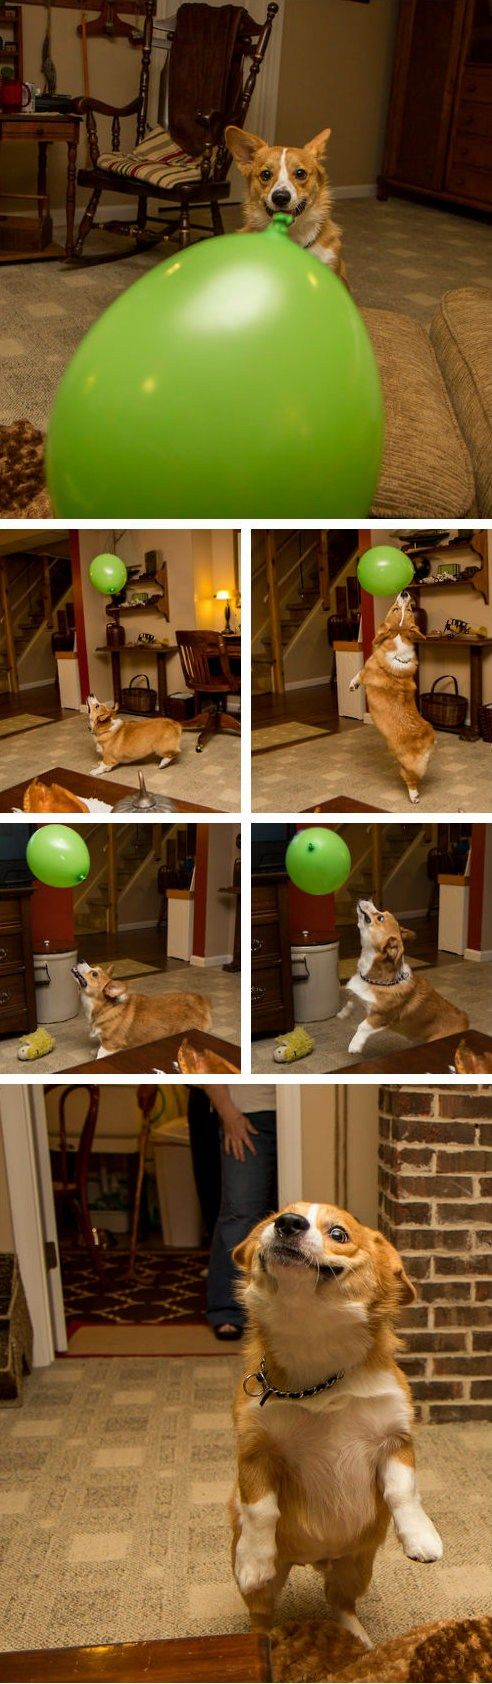 Corgi playing with a balloon!: Corgis, Corgi Cuteness, Dogs, Adorable Animals, Balloon Chasing Corgi, Corgi S, Puppy, Animals 3, Balloons